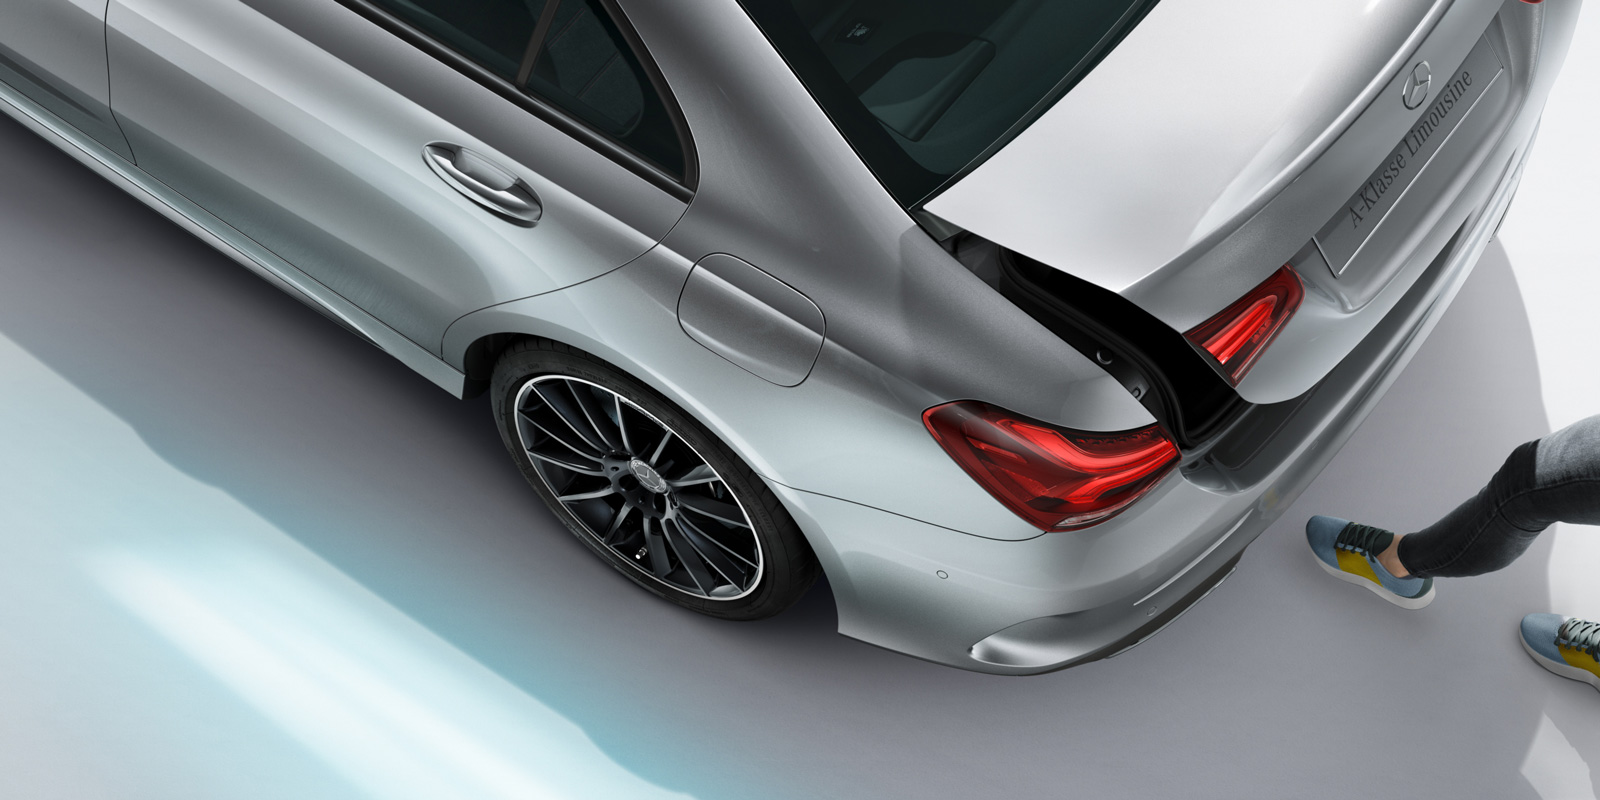 mercedes_benz_a_klasse_sedan_1600x800_03